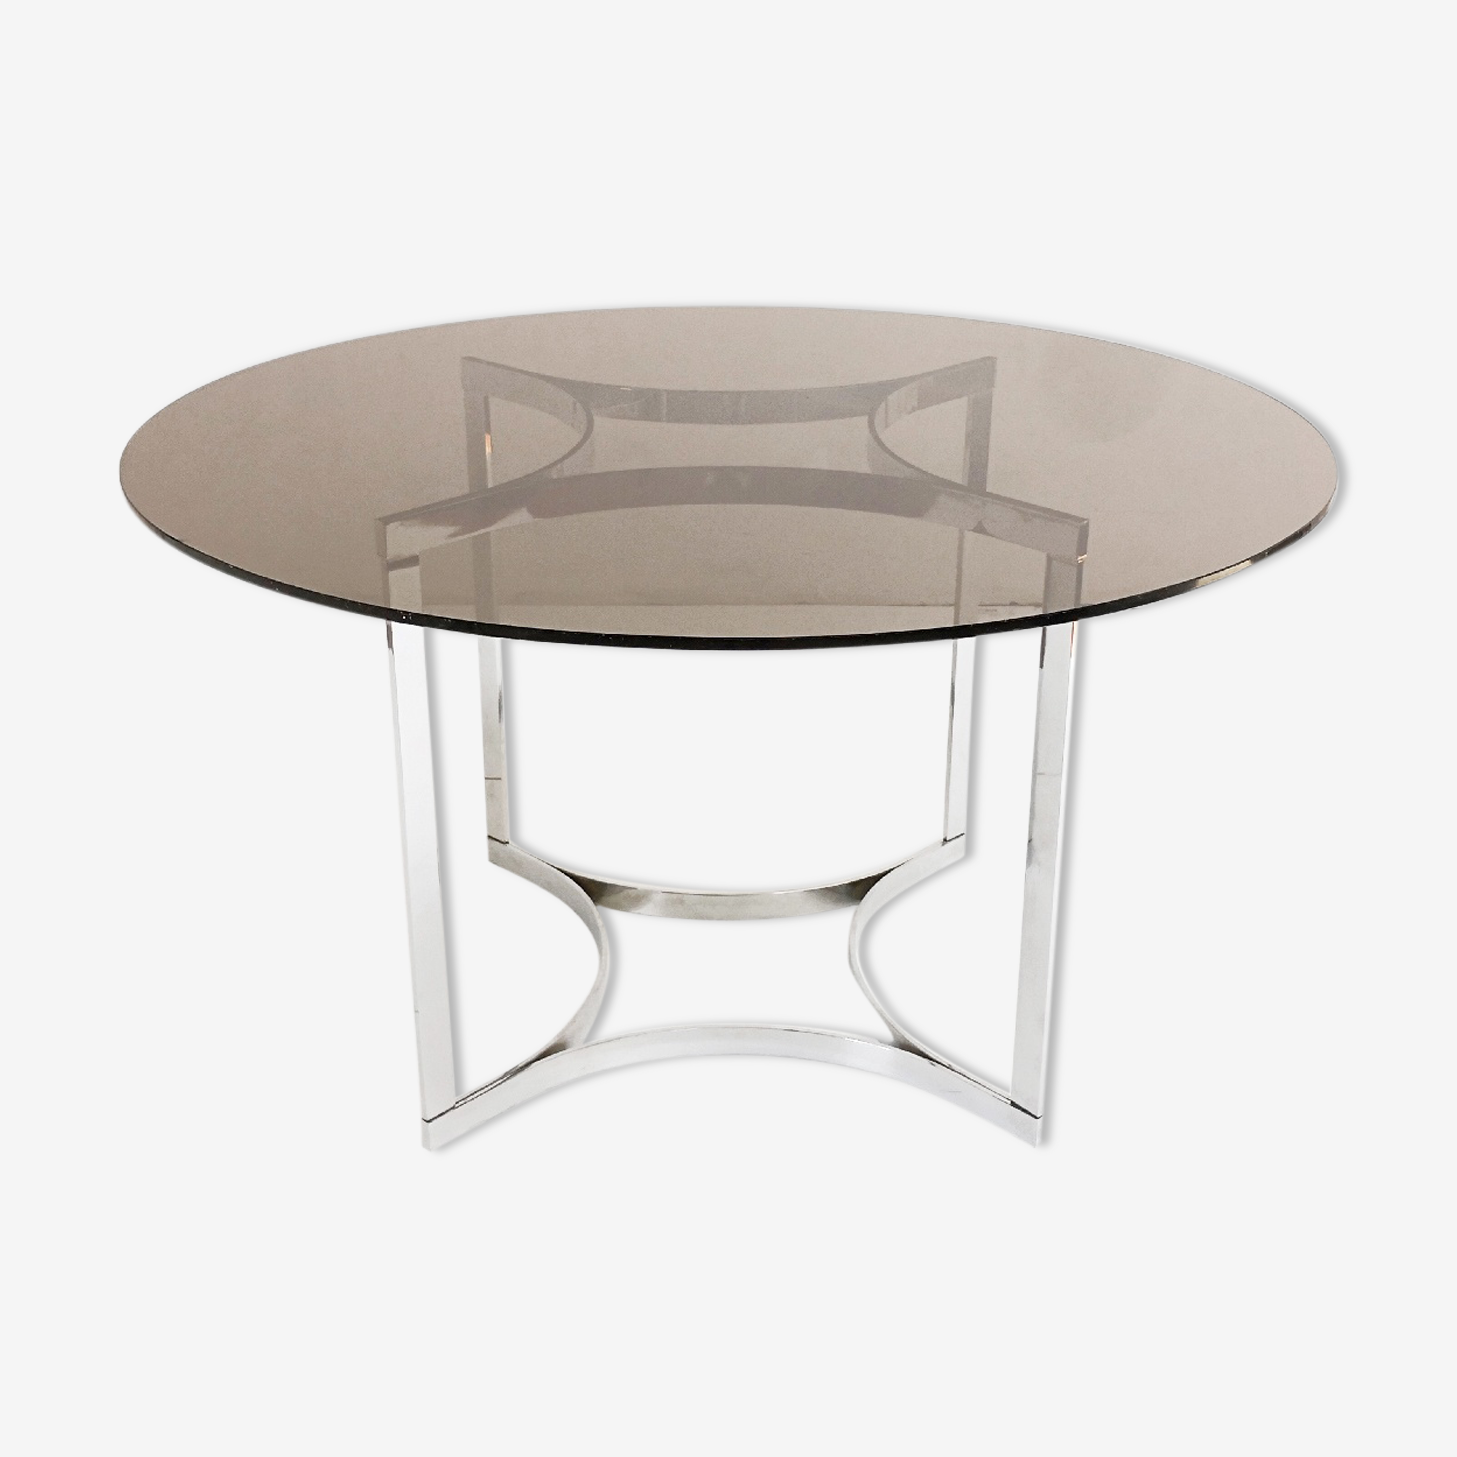 Round dining room table years 70